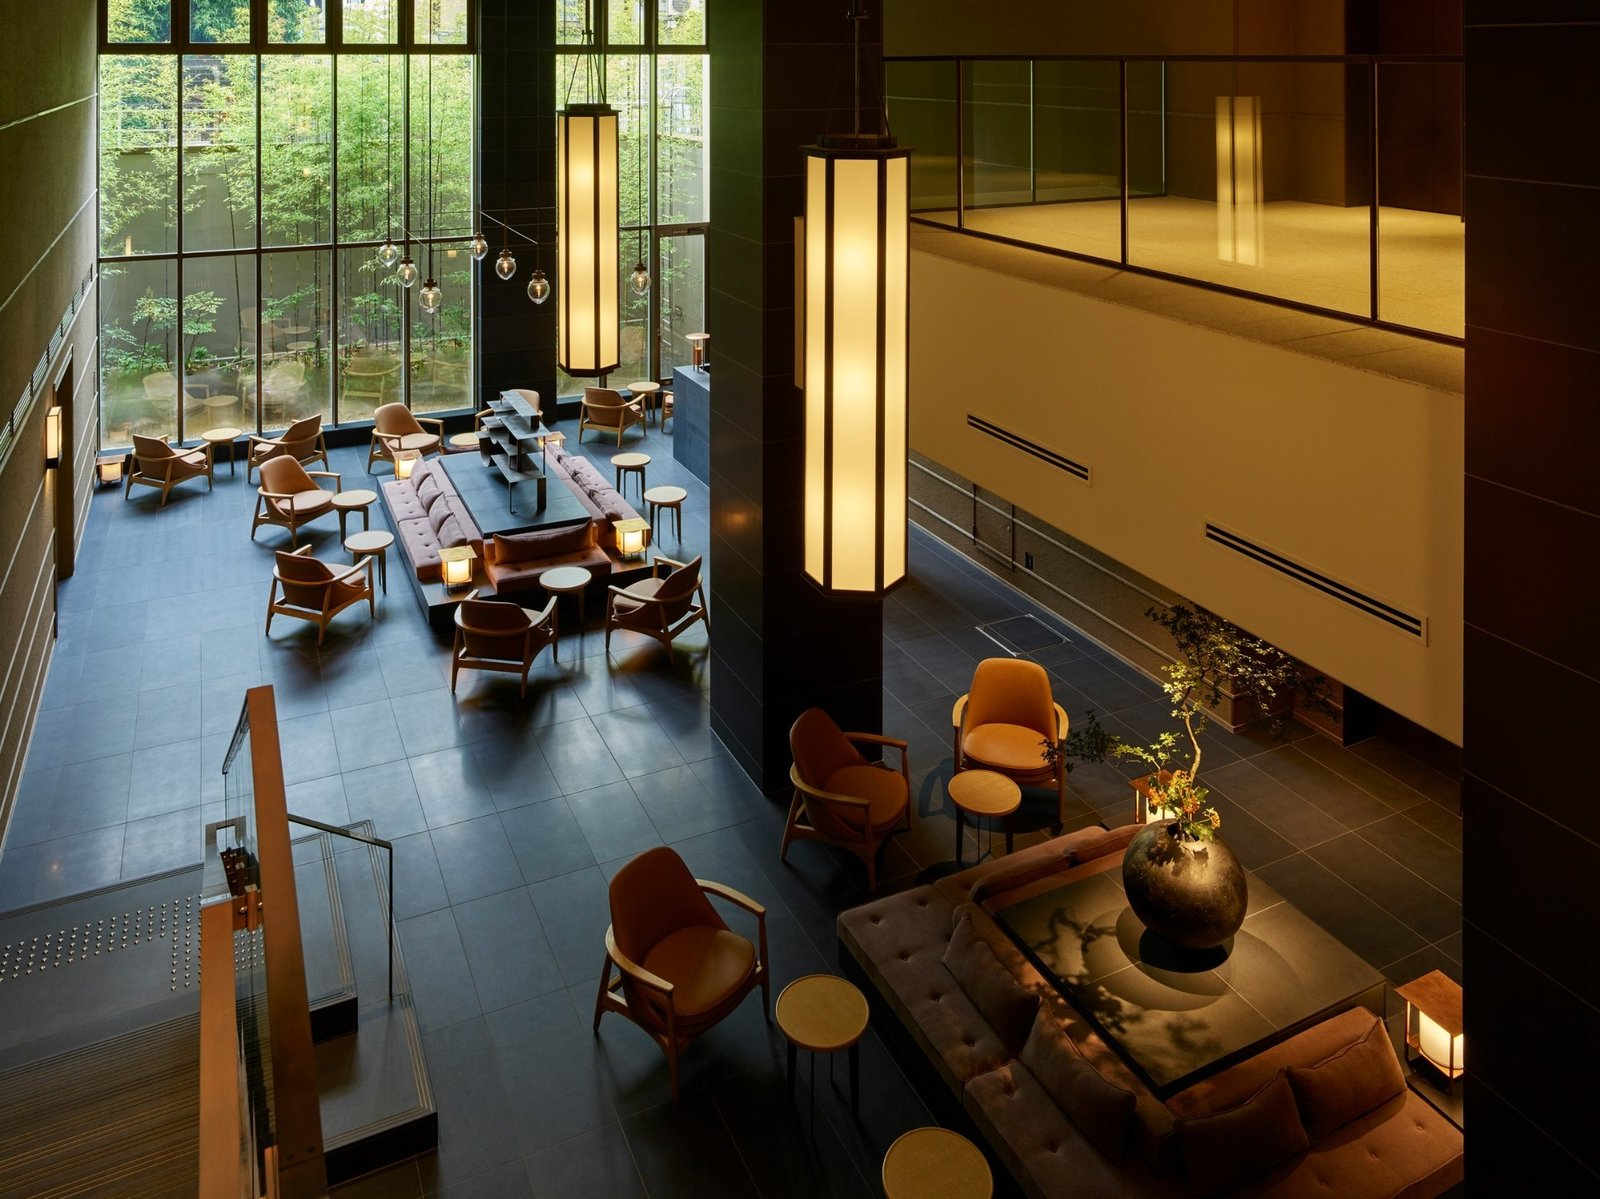 Living Room, Chair, Pendant Lighting, Bench, and End Tables  Hotel The Celestine Kyoto Gion